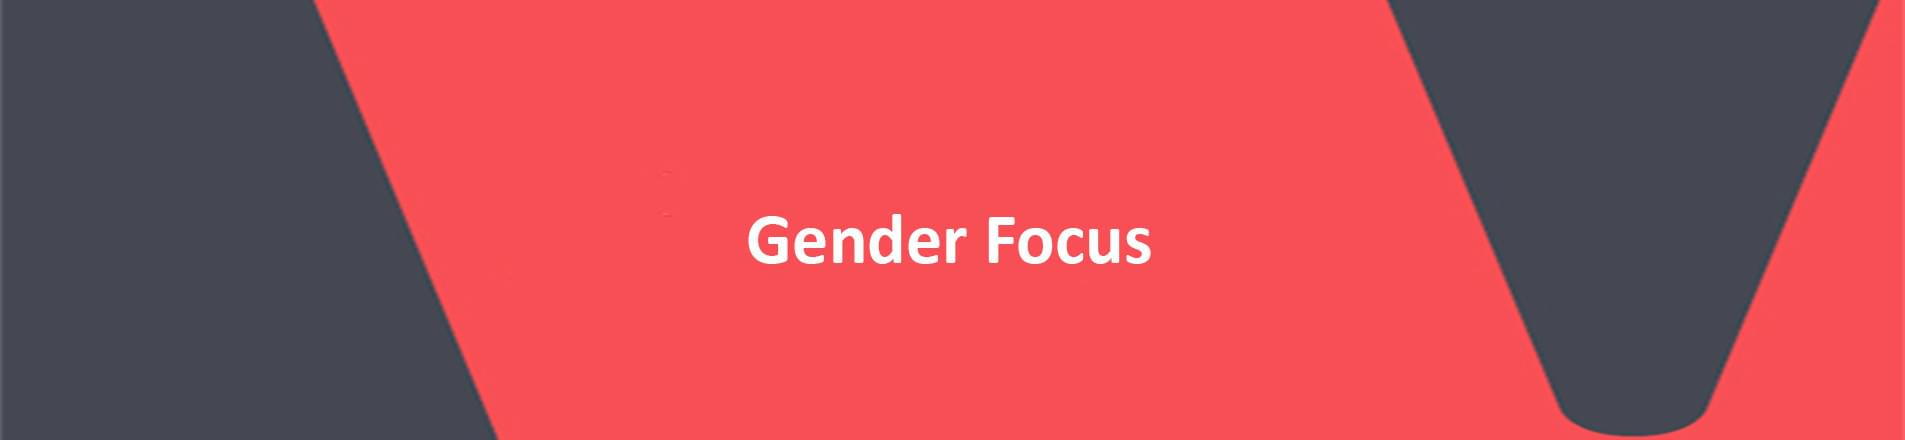 """VERCIDA logo with words """"Gender Focus"""" in white letters on red banner."""